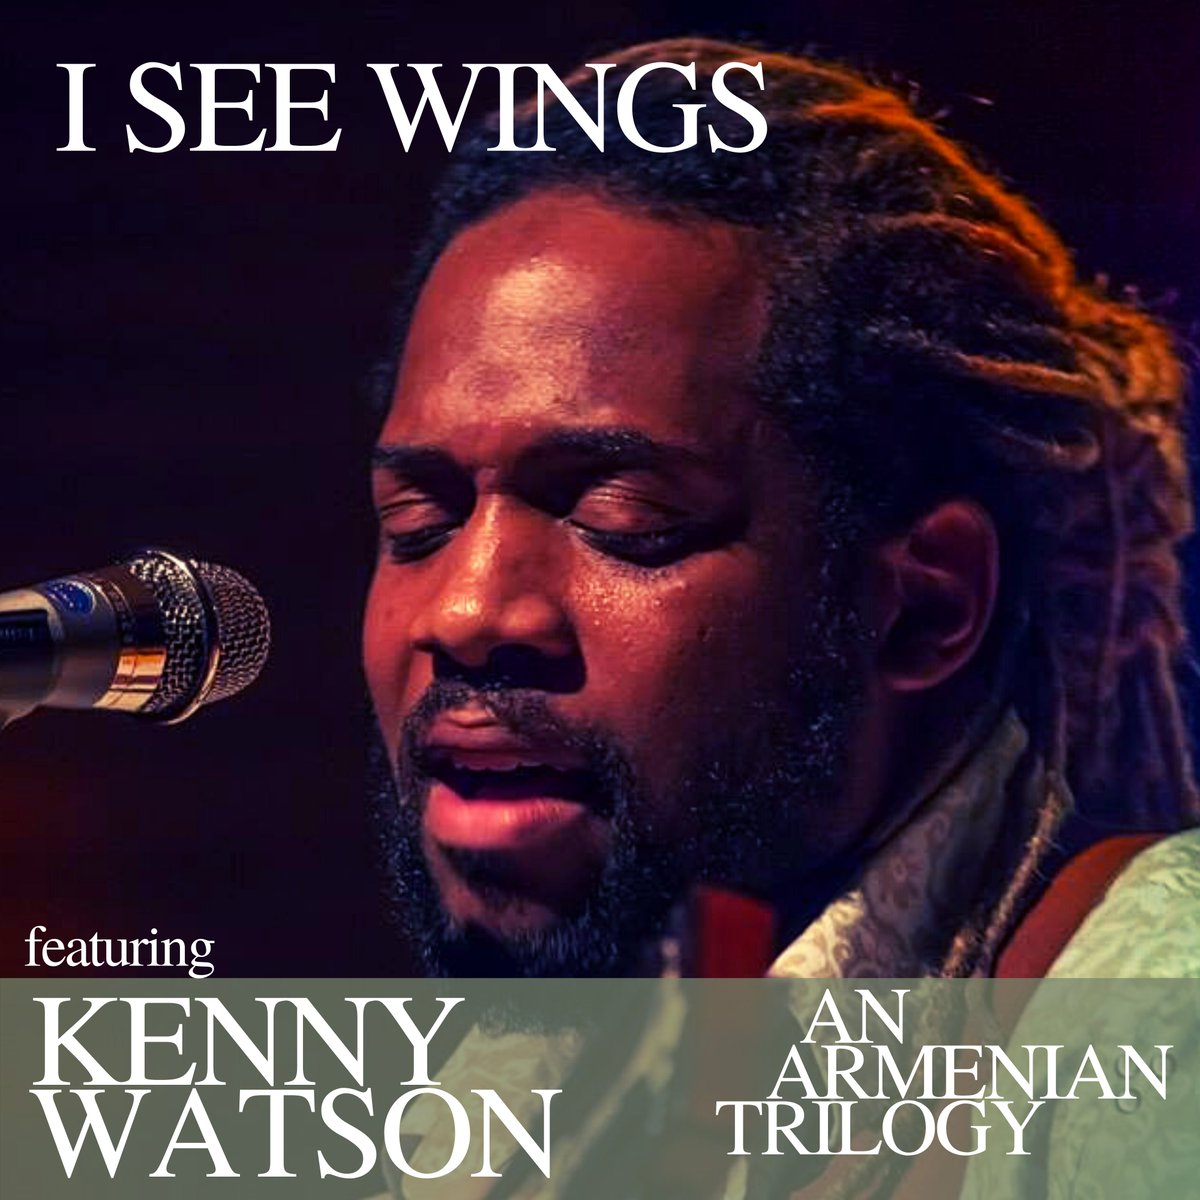 """https://t.co/kCEPXxshVu The story of """"I See Wings"""" interpreted through @1KennyWatson eyes https://t.co/bONBh5PeeN"""